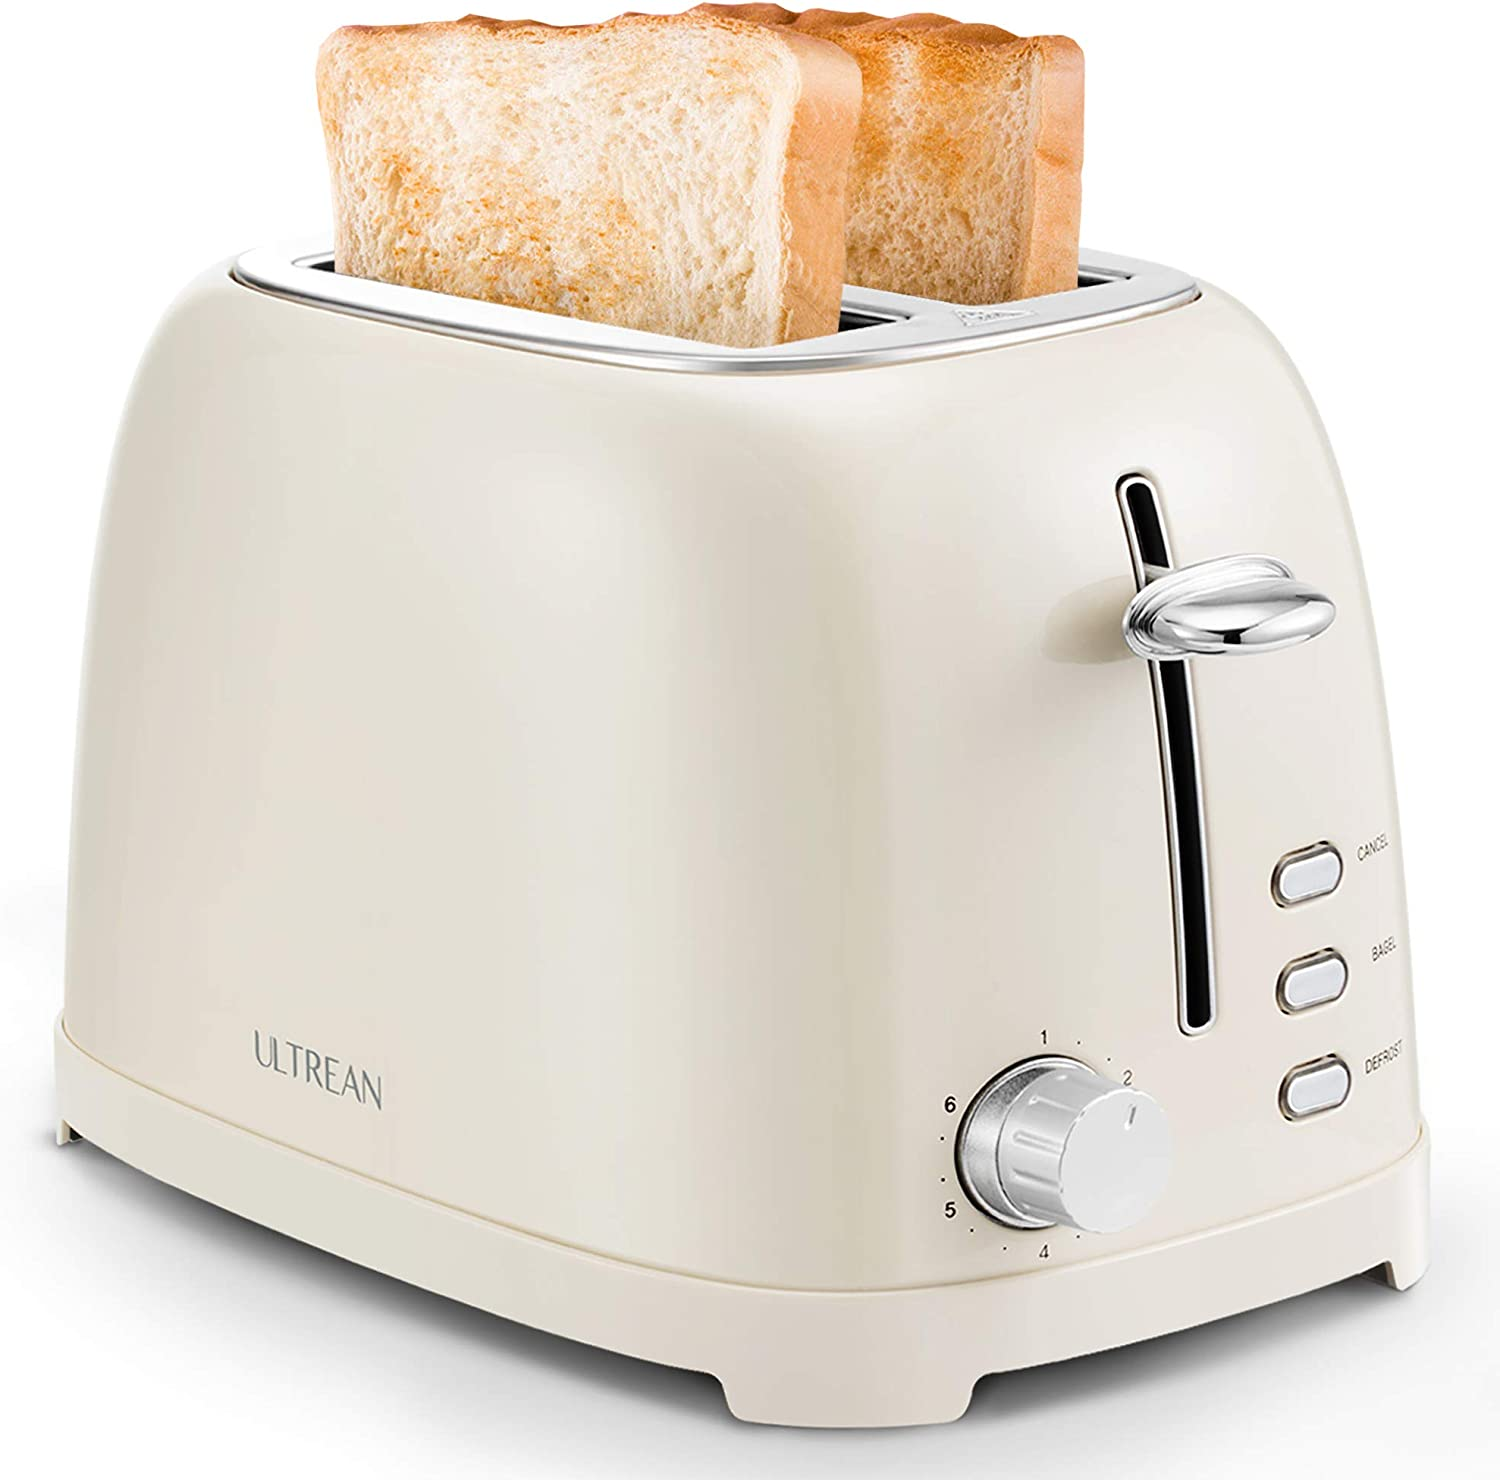 Ultrean Toaster 2 Slice with Extra-Wide Slot, Stainless Steel Toaster with Removable Crumb Tray, Small Toaster with 6 Browning Settings, Cancel, Bagel, Deforest Functions, 825 W, Cream